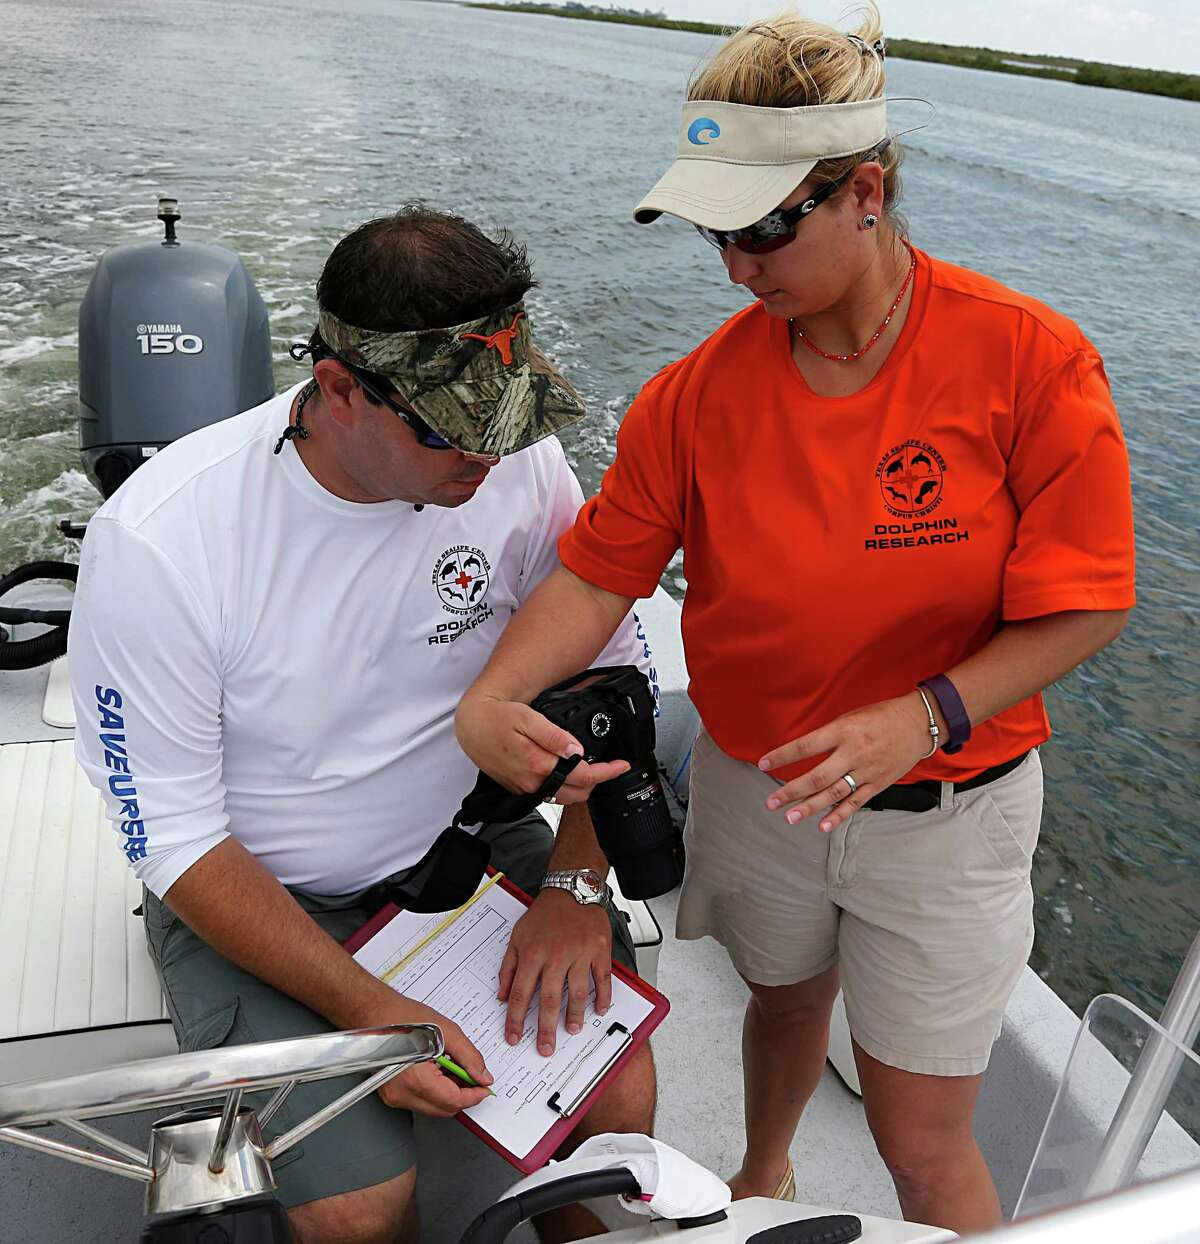 Will McGlaun, left, research director of Texas Sealife Center in Corpus Christi, and volunteer Sara Callender record data from photographs during a dolphin survey on Tuesday in Port Aransas.